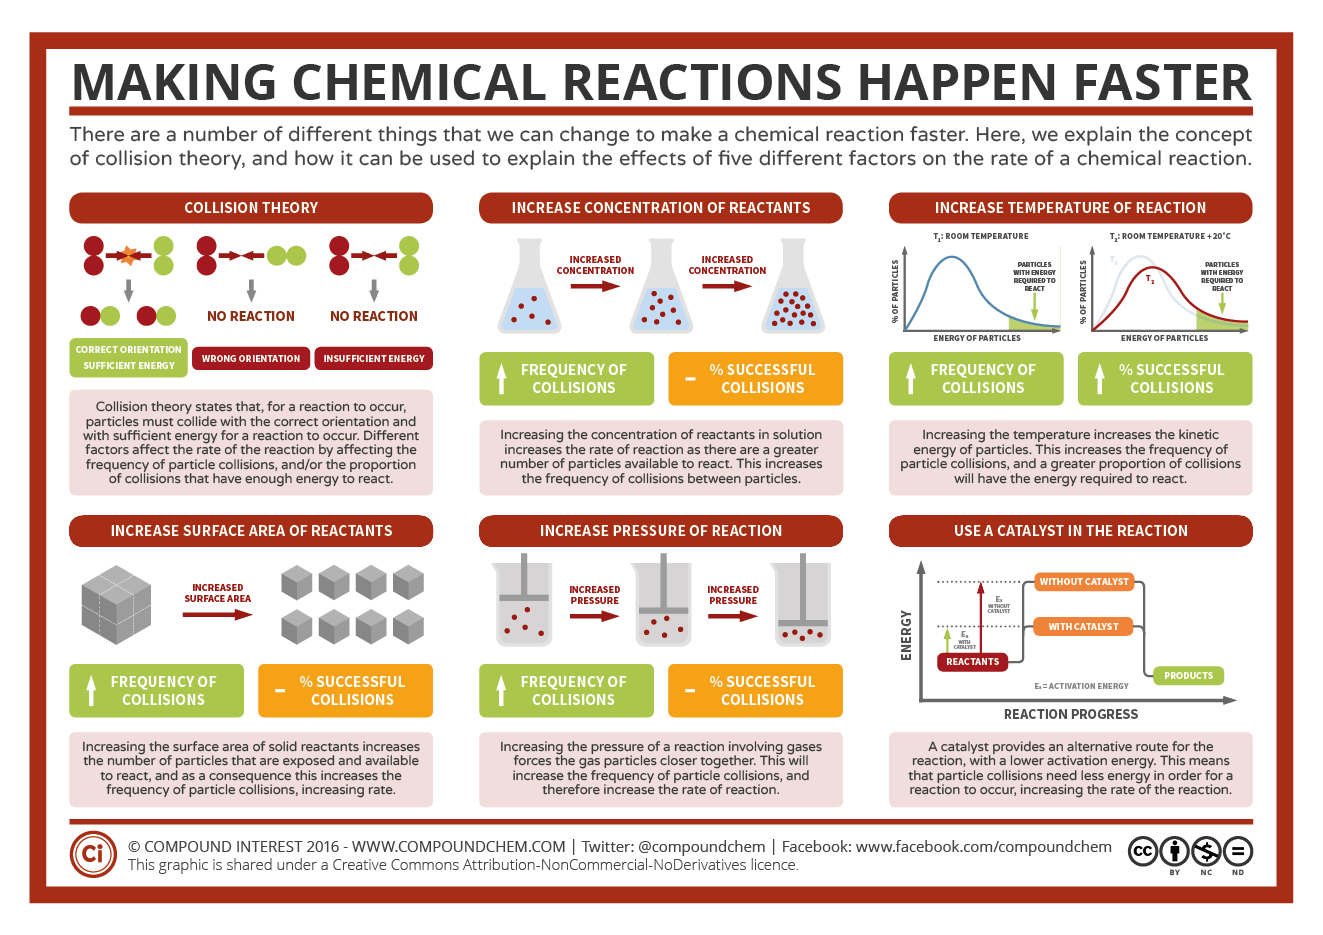 an analysis of the rate of gas production in a chemical reaction experiment The goals here are to develop a chemical kinetics basis for the empirical expression, and to show that kinetic analysis can be used to take mechanistic insight and describe reaction.